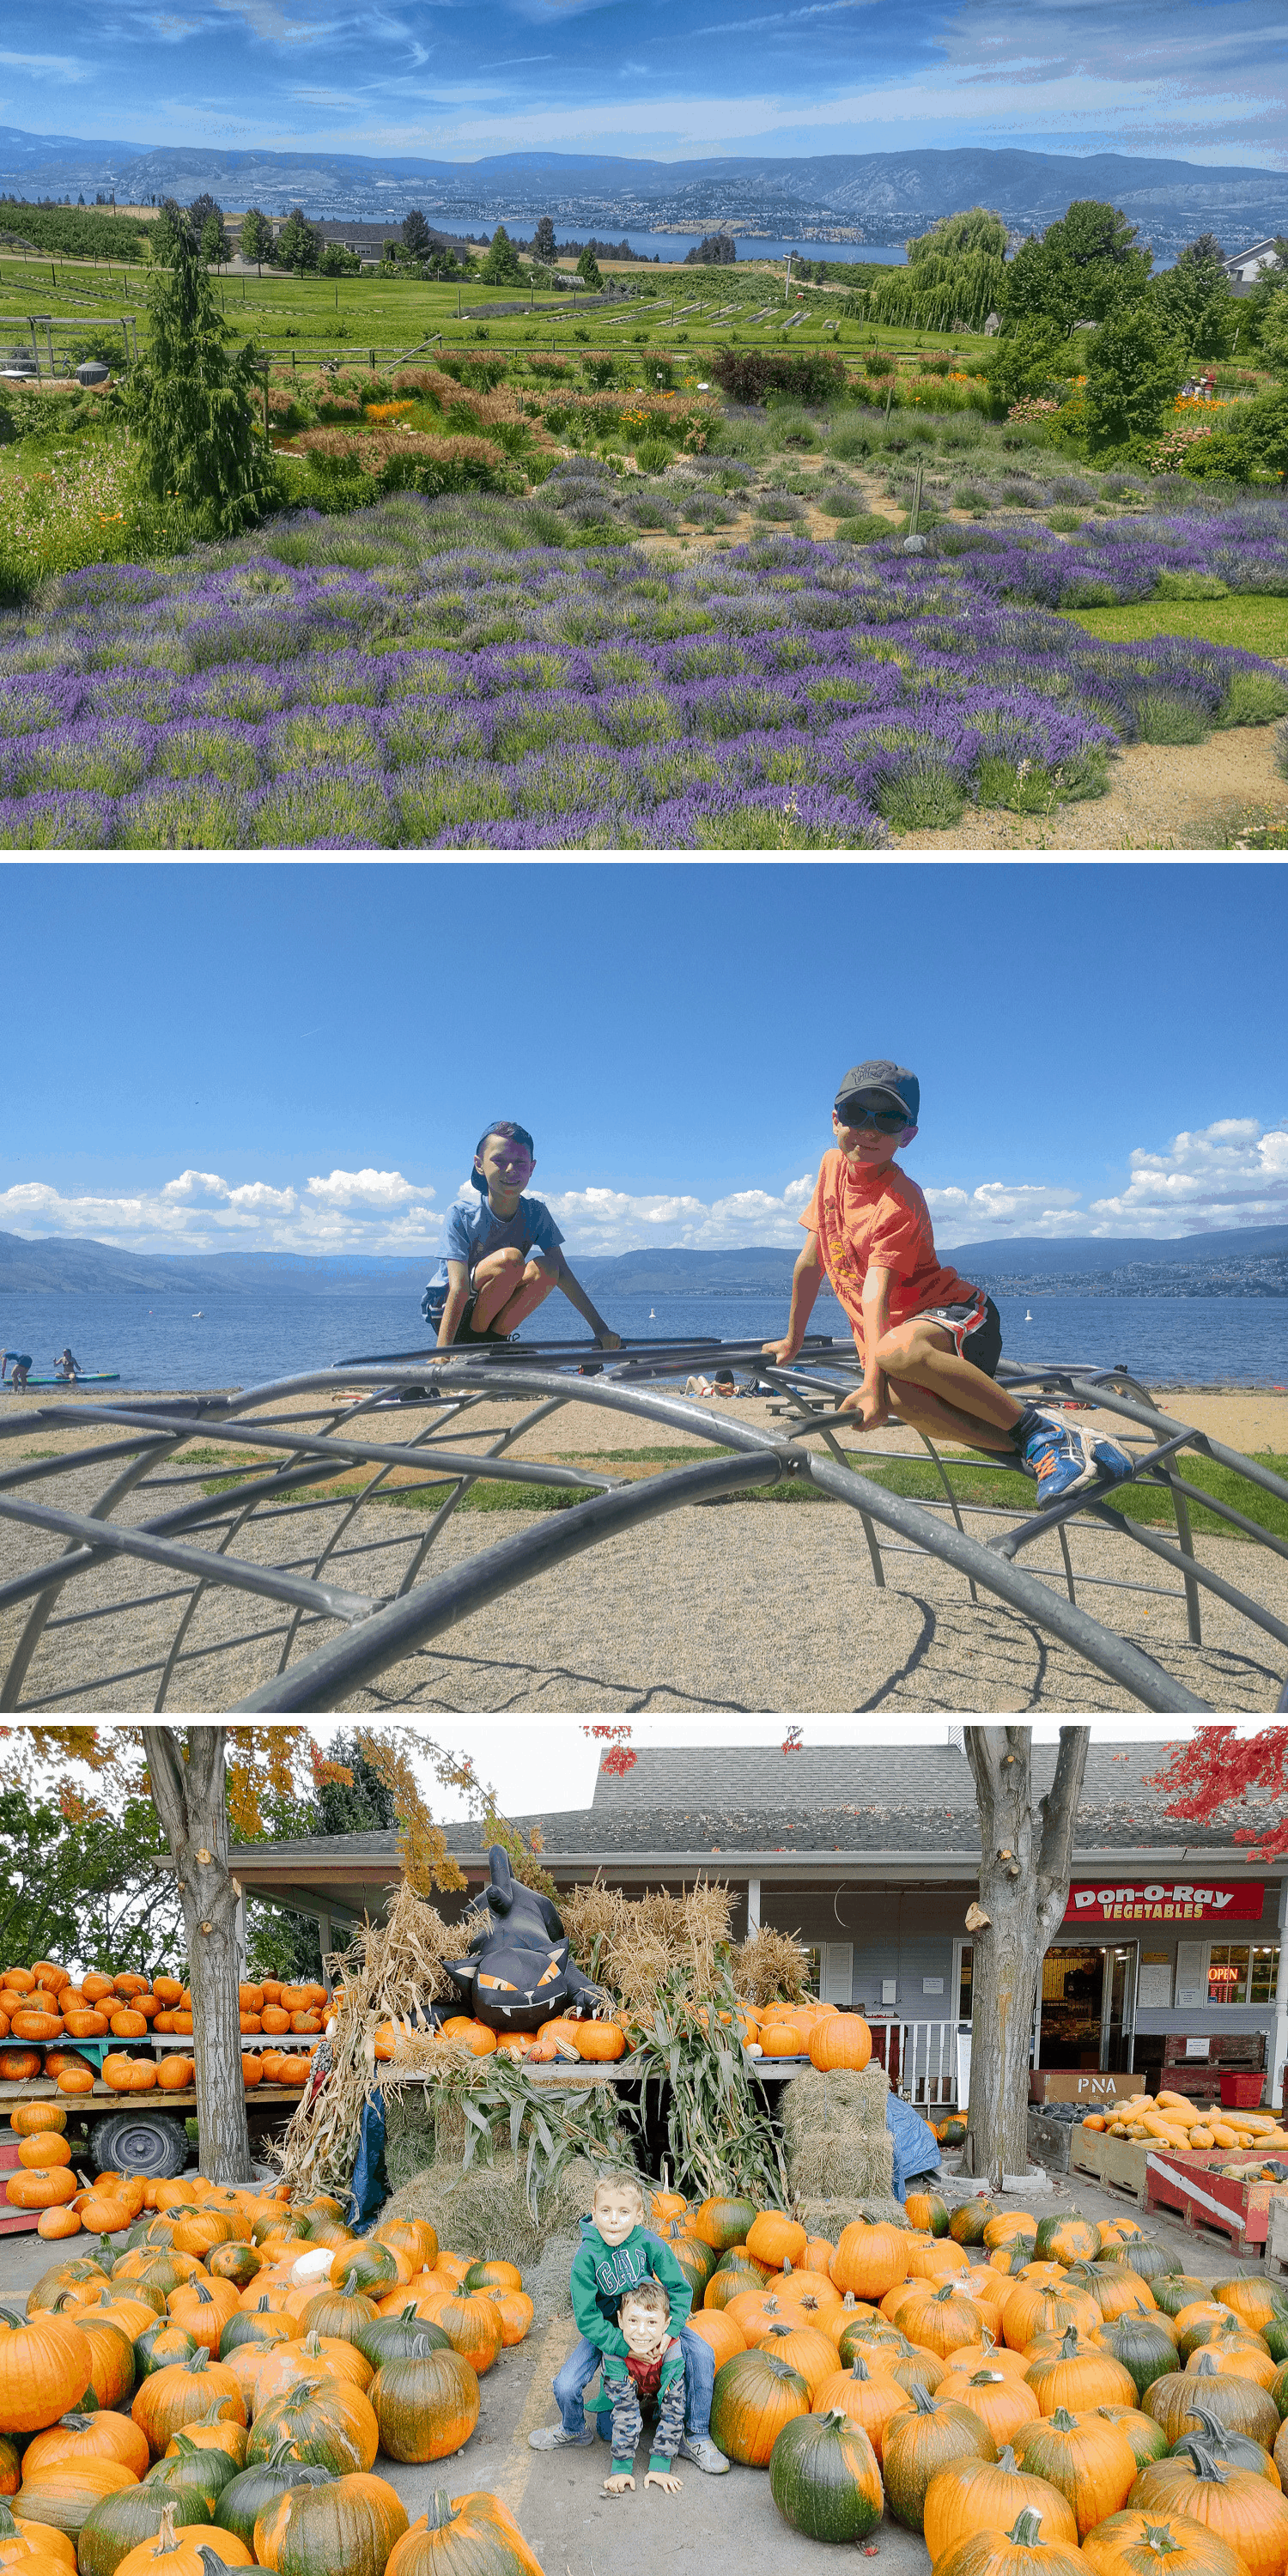 Three photos of Kelowna: lavender field, playground and pumpkins.